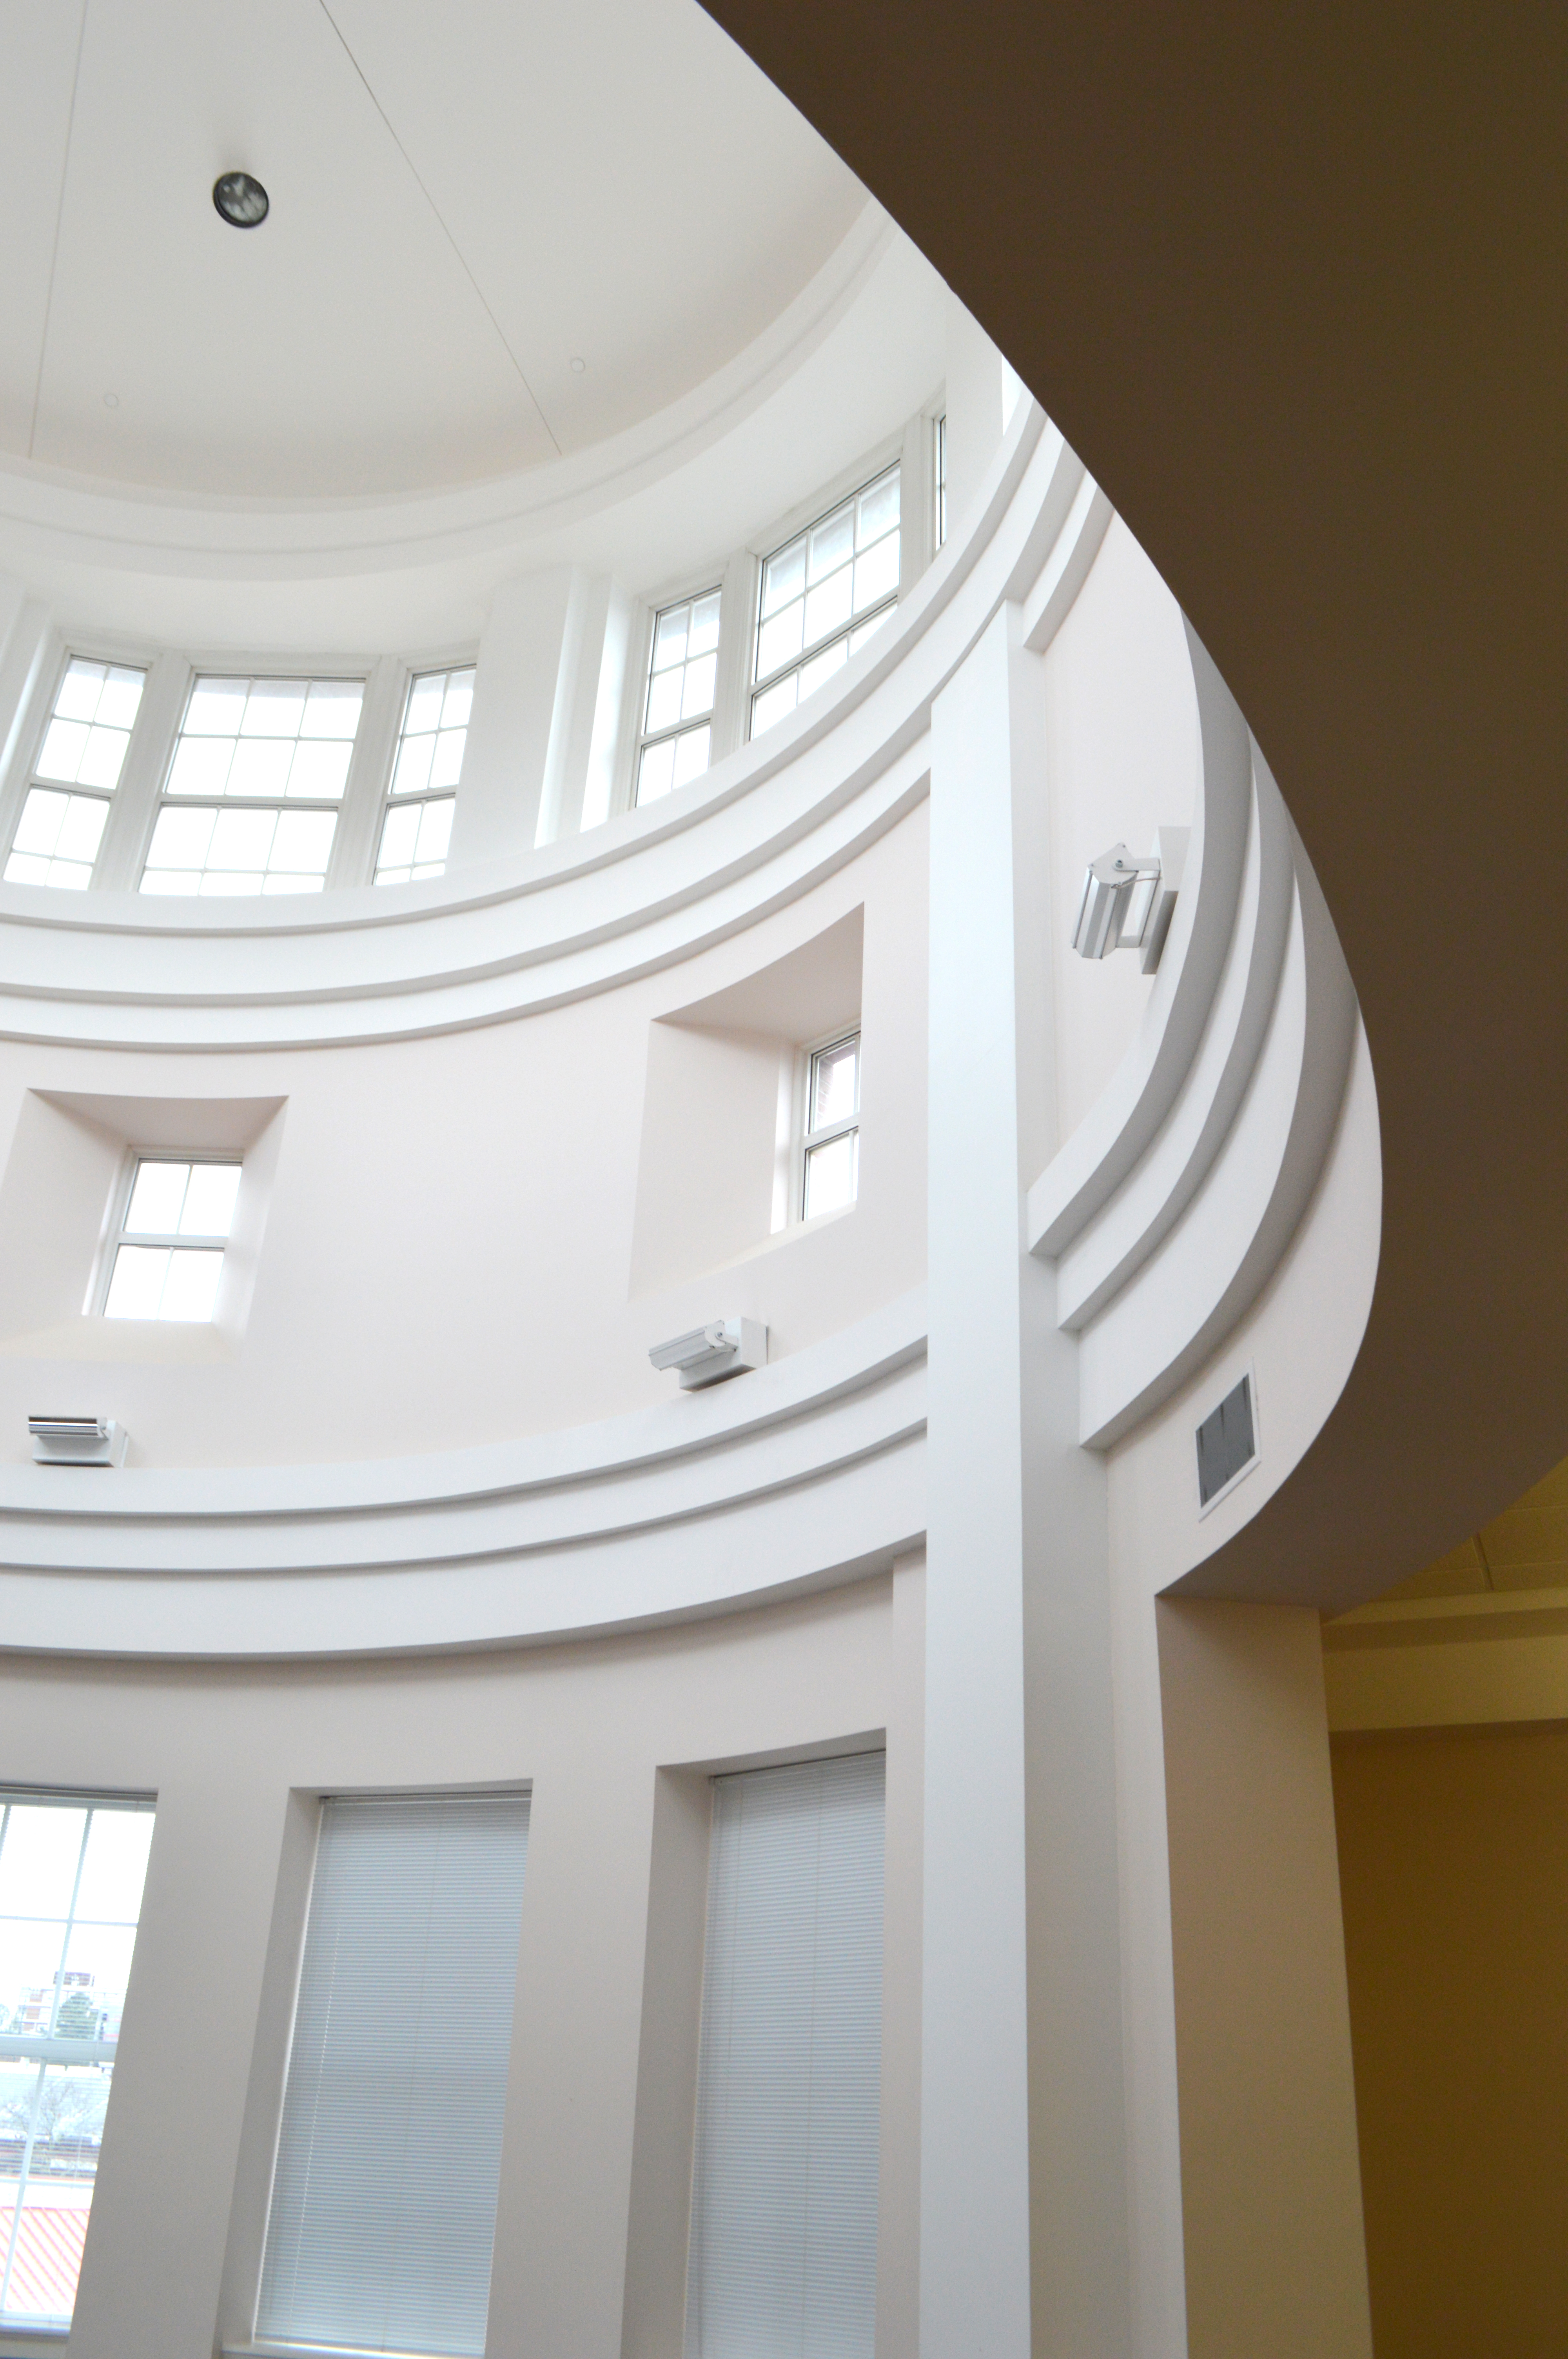 North Tower interior windows and dome